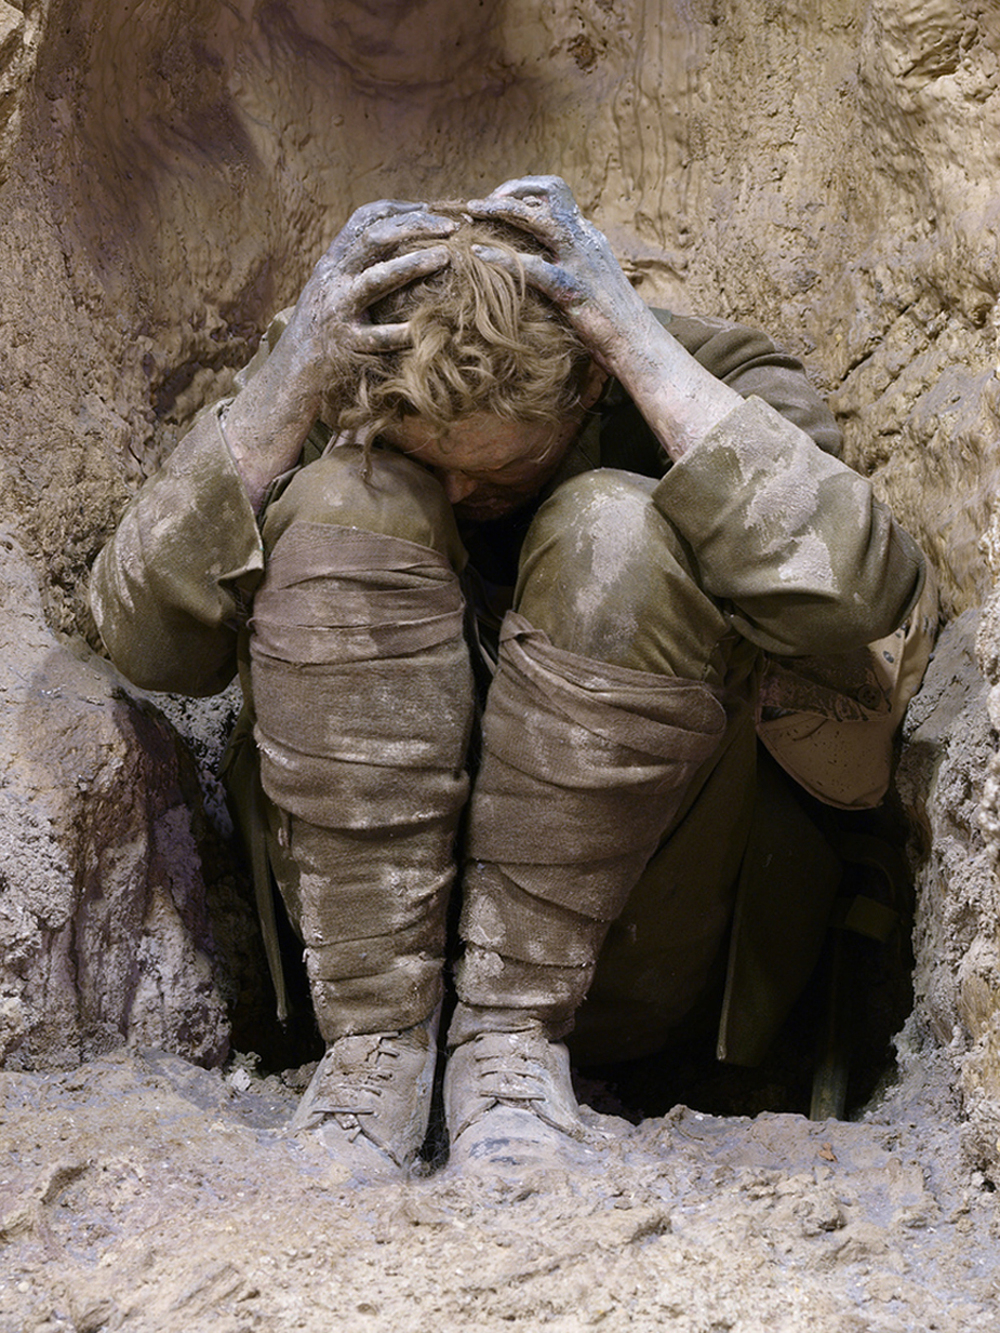 An exhibition of a soldier in a trench suffering from shell shock. For thousands of soldiers in the Great War, the fear, paranoia hysterical crying, terrible nightmares, mutism, fatigue, facial tics, and tremors were symptomatic of shell shock.